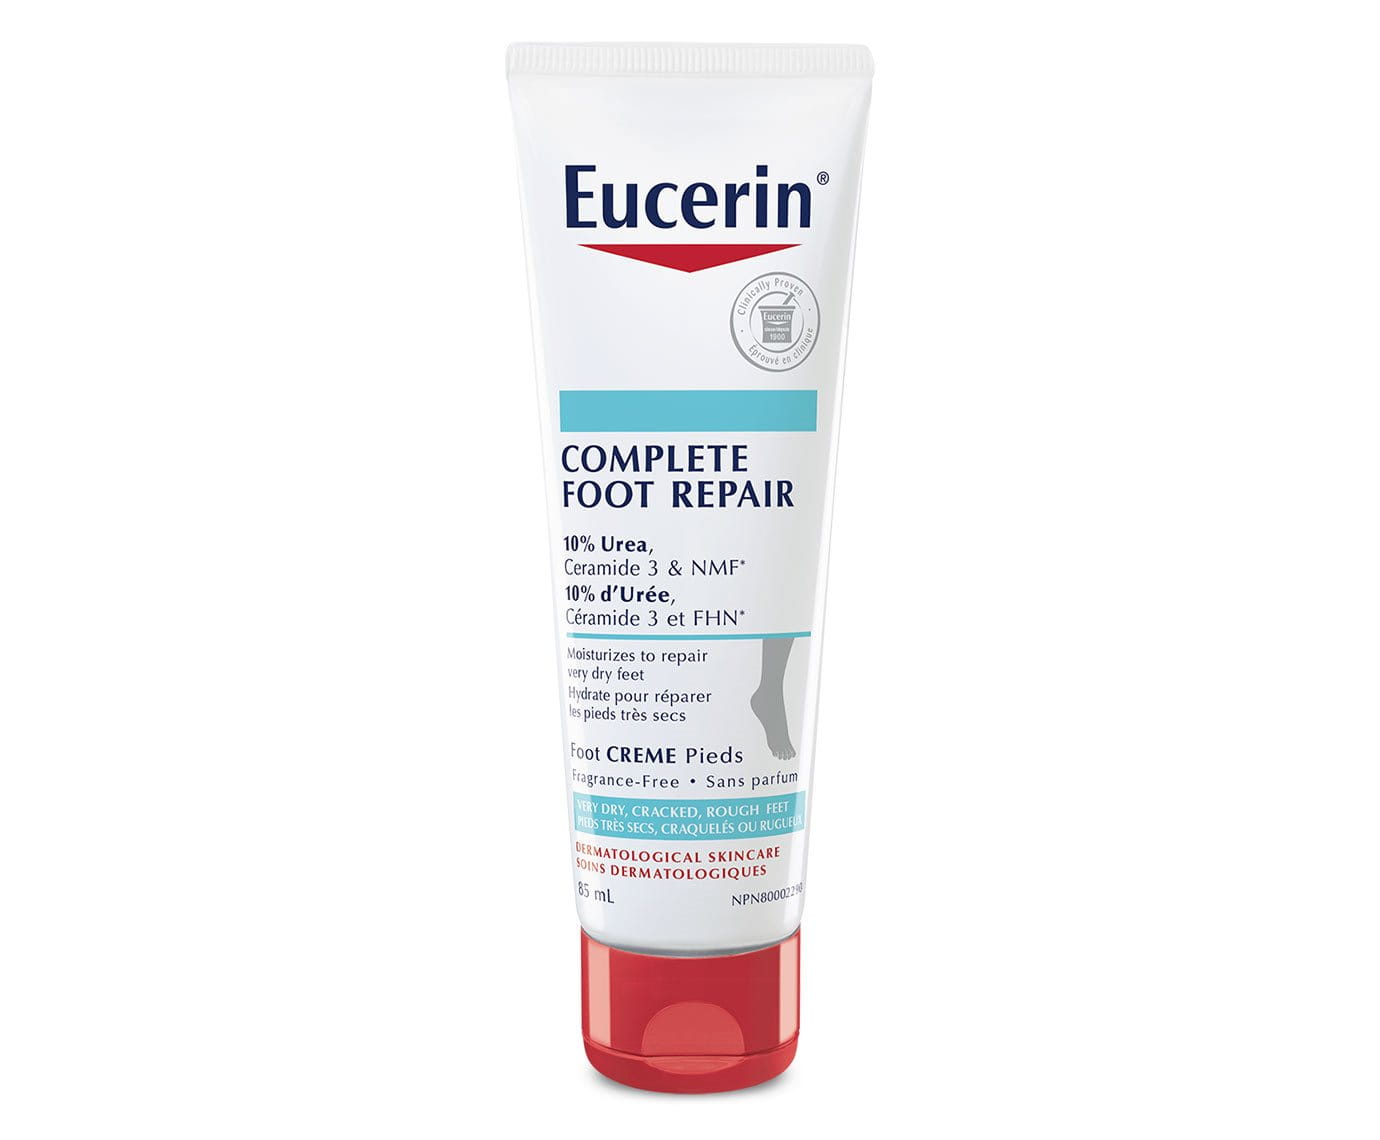 Eucerin Repair Foot Creme 10 Urea